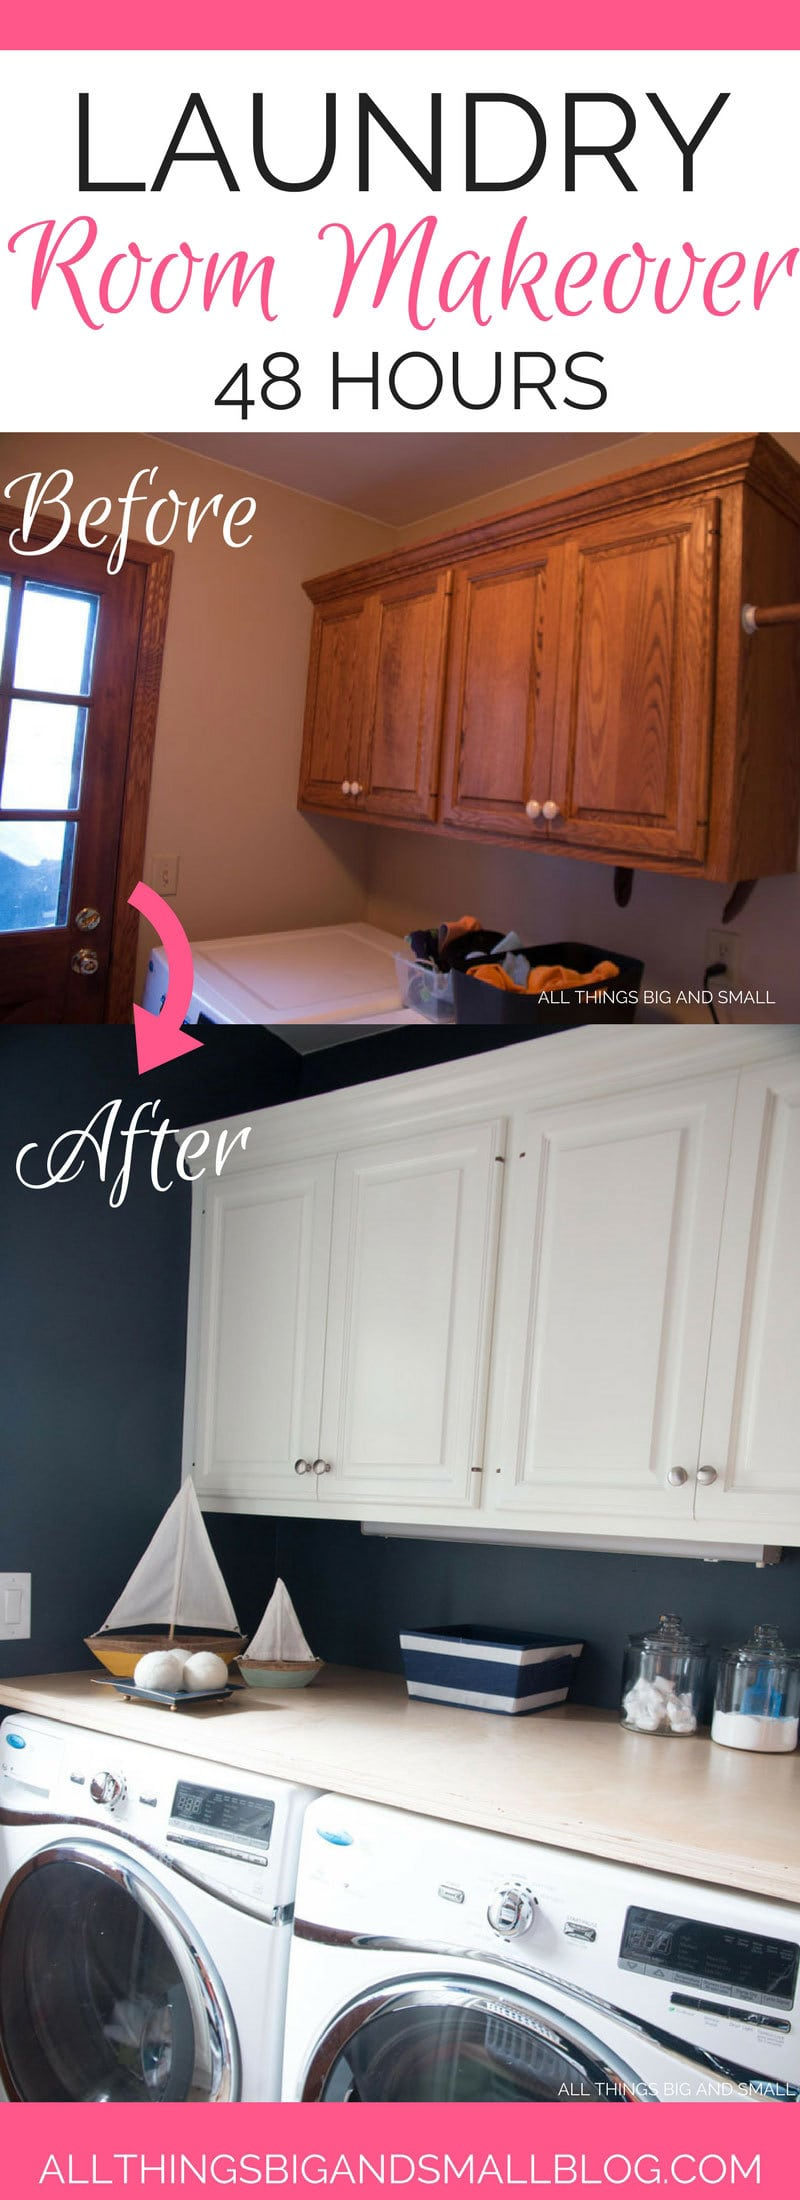 laundry room ideas | 48 hour laundry room MAKEOVER | budget friendly DIY laundry room | DIY laundry room | All Things Big and Small